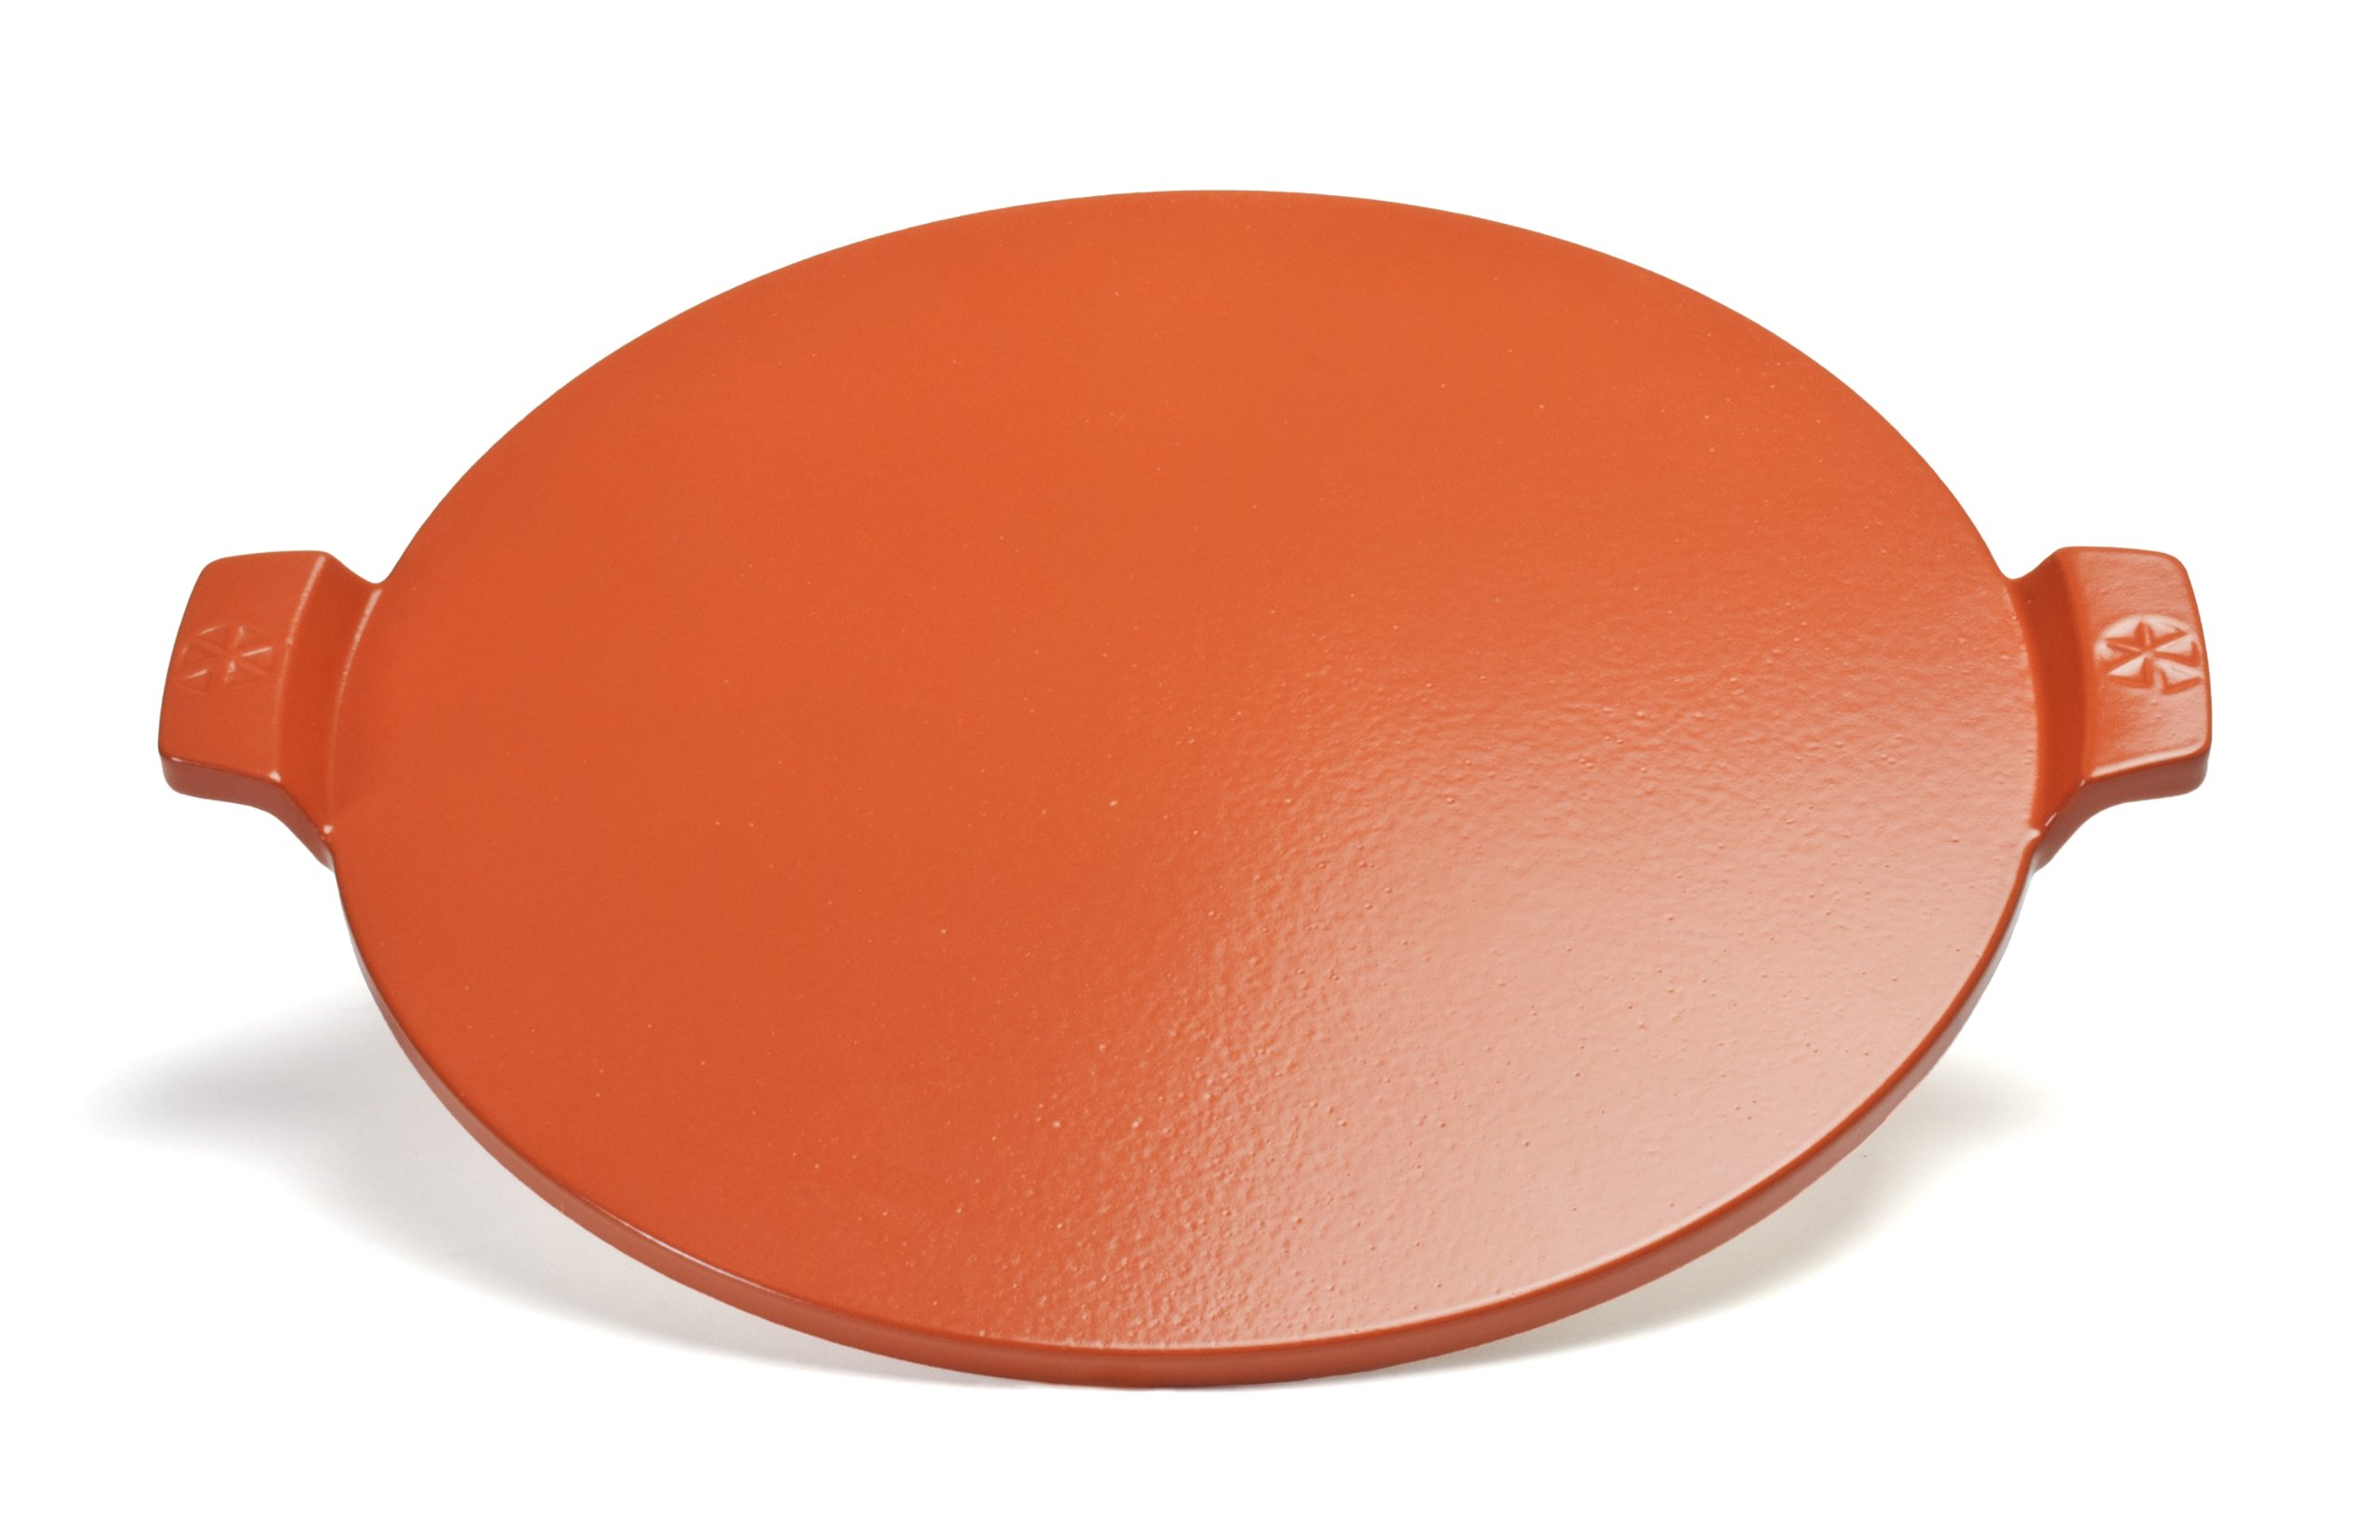 Pizzacraft 14.5'' Round Glazed Pizza Grilling Stone with Handles - PC0109 (Orange)